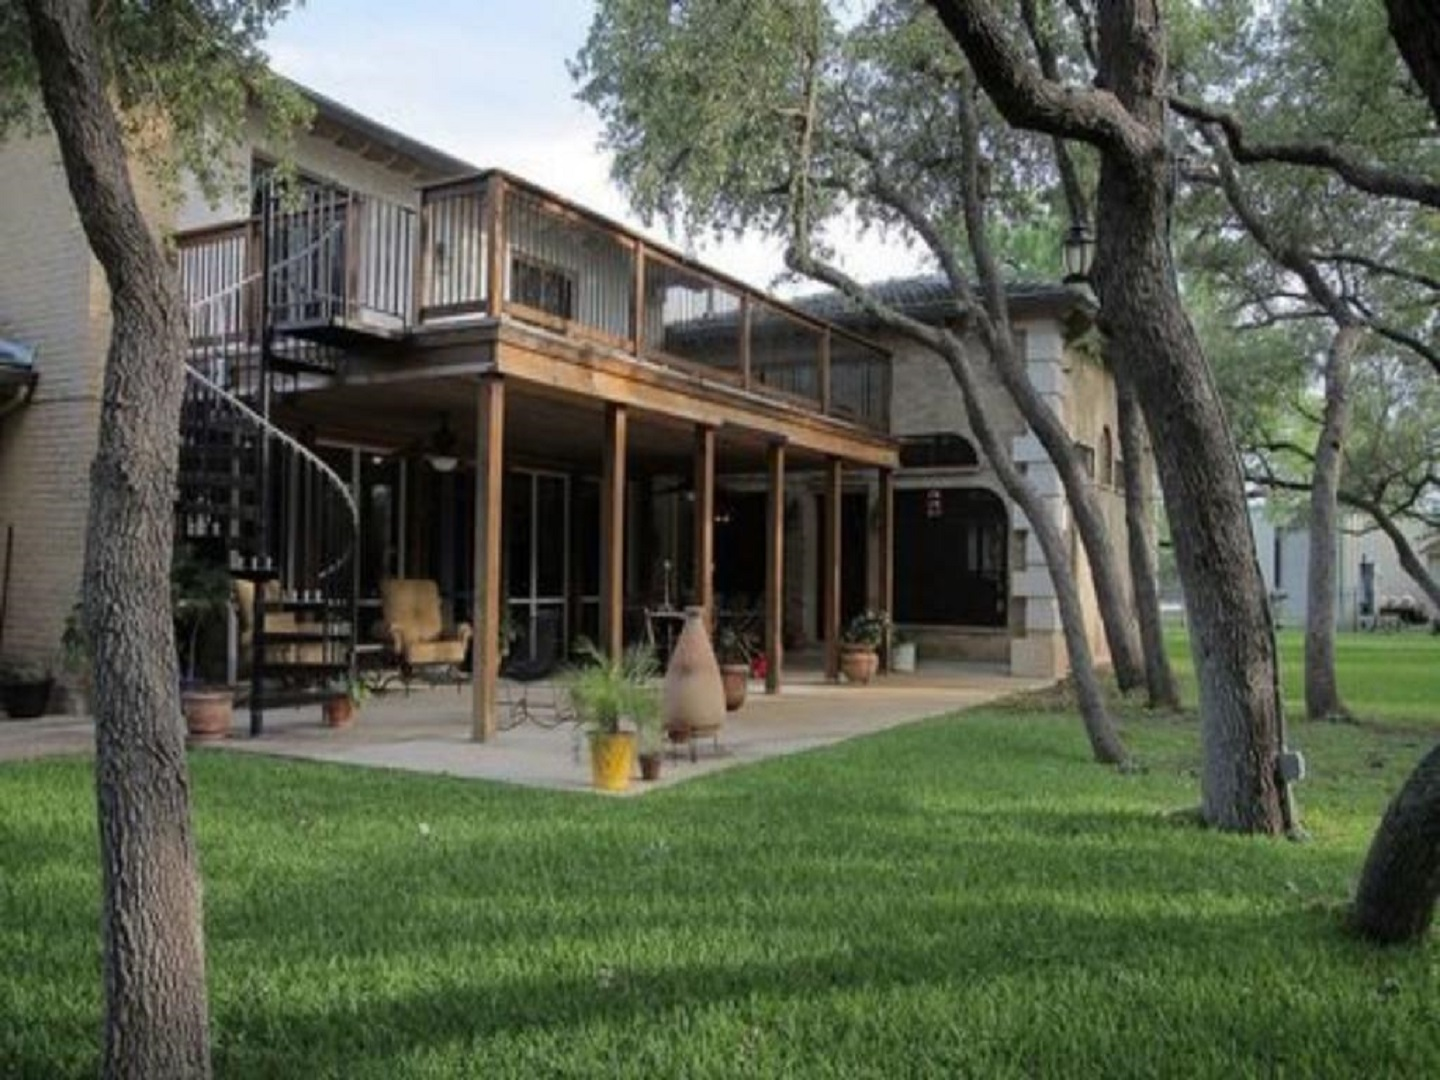 A large lawn in front of a building at Live Oaks Bed & Breakfast.